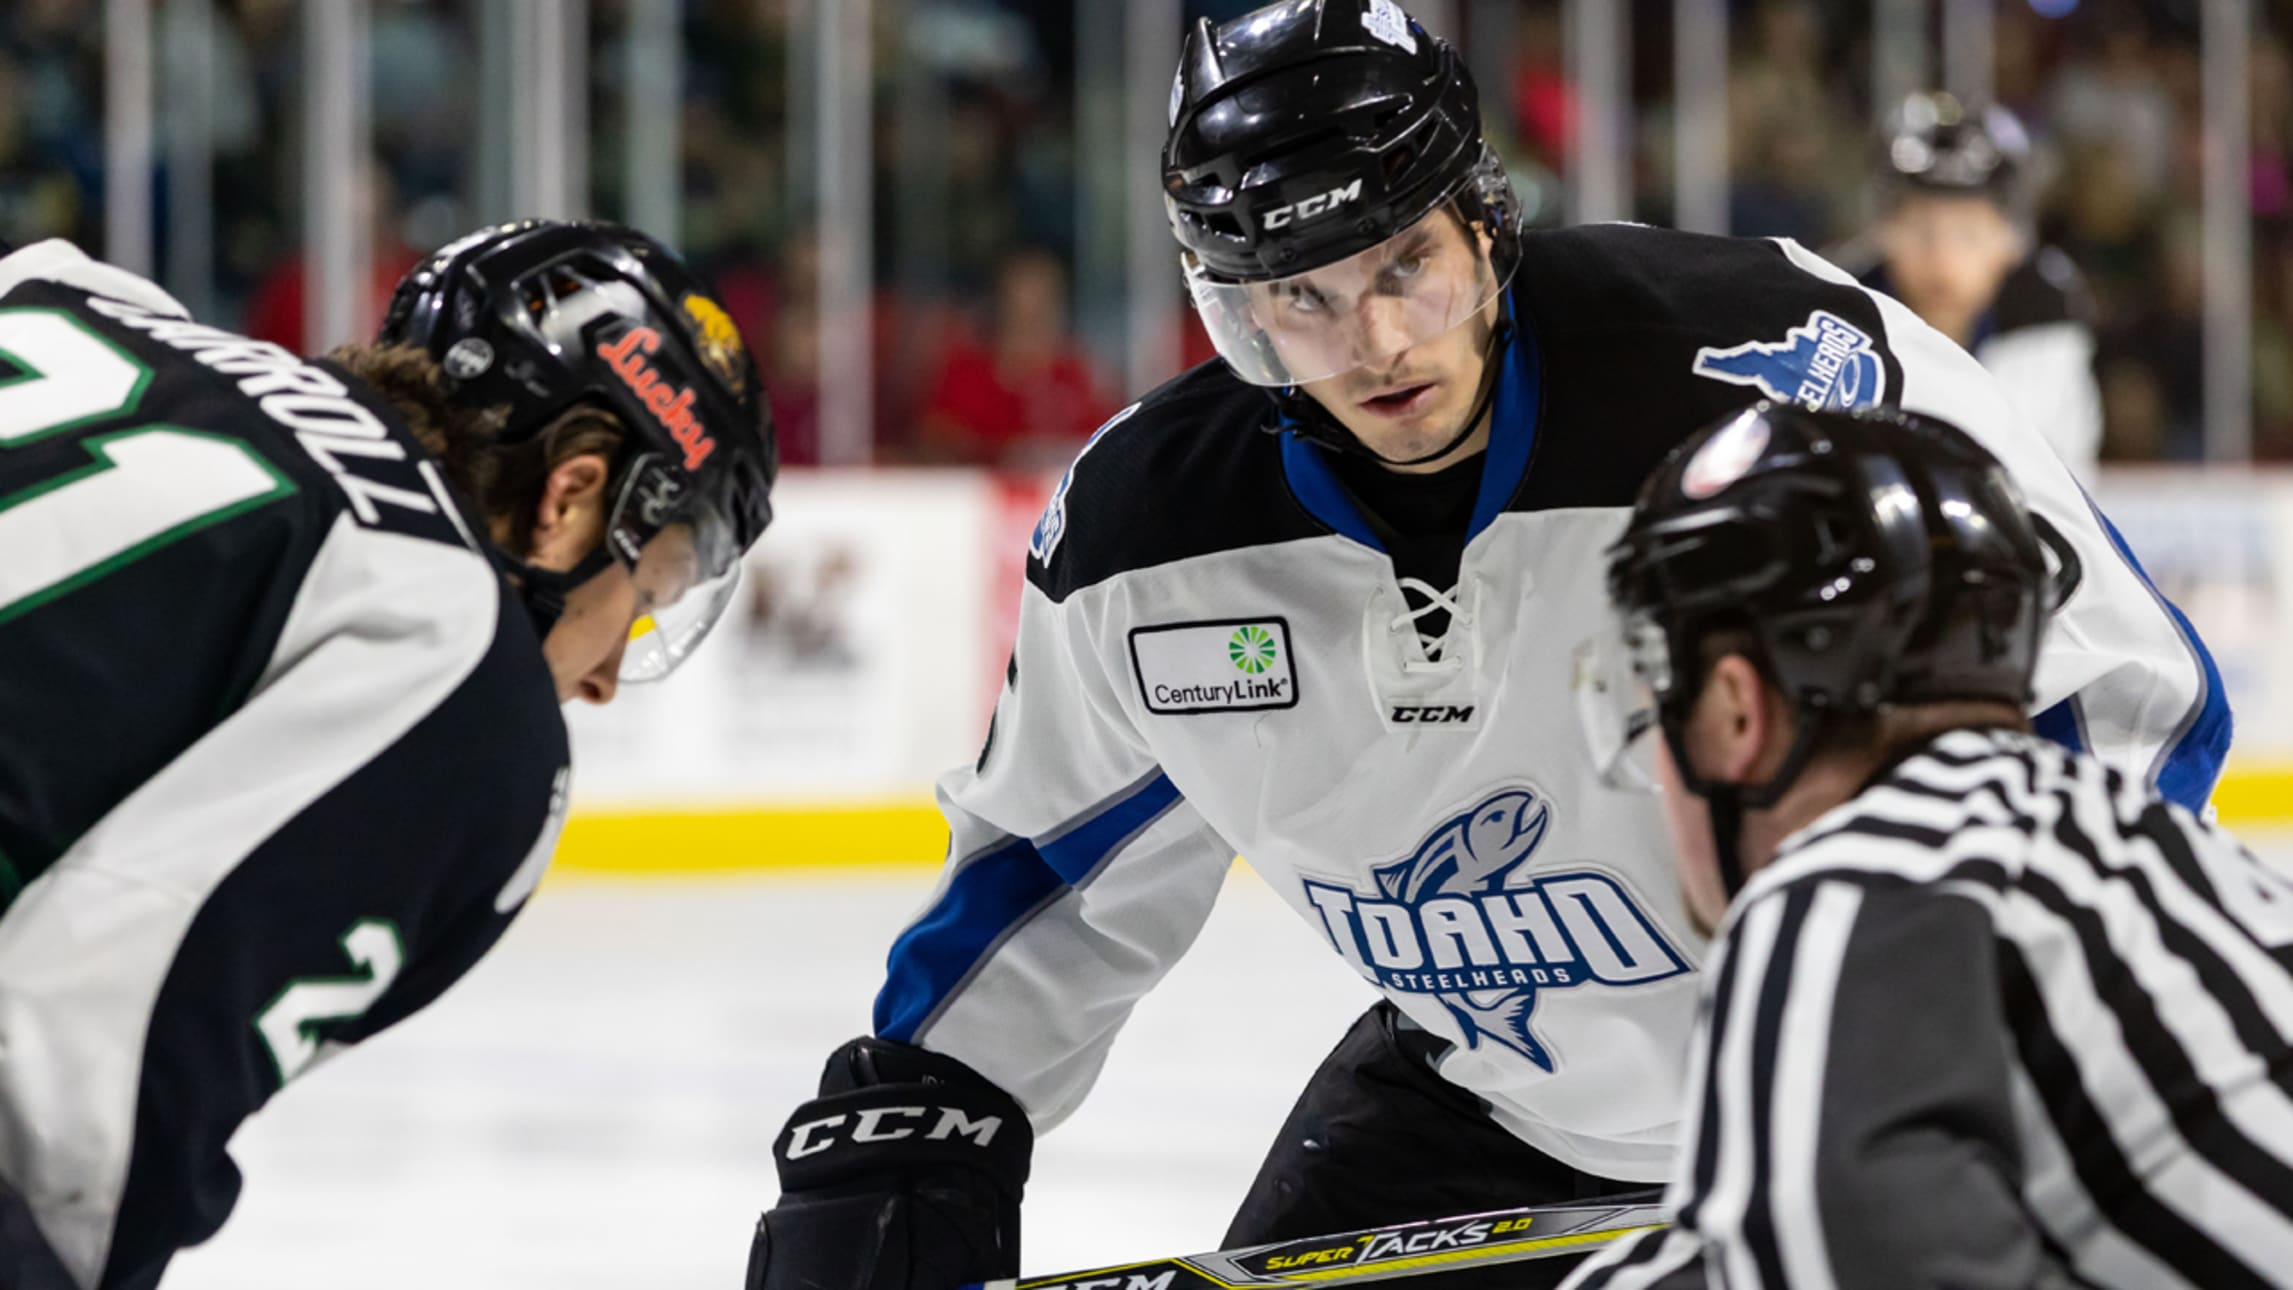 Image result for idaho steelheads images